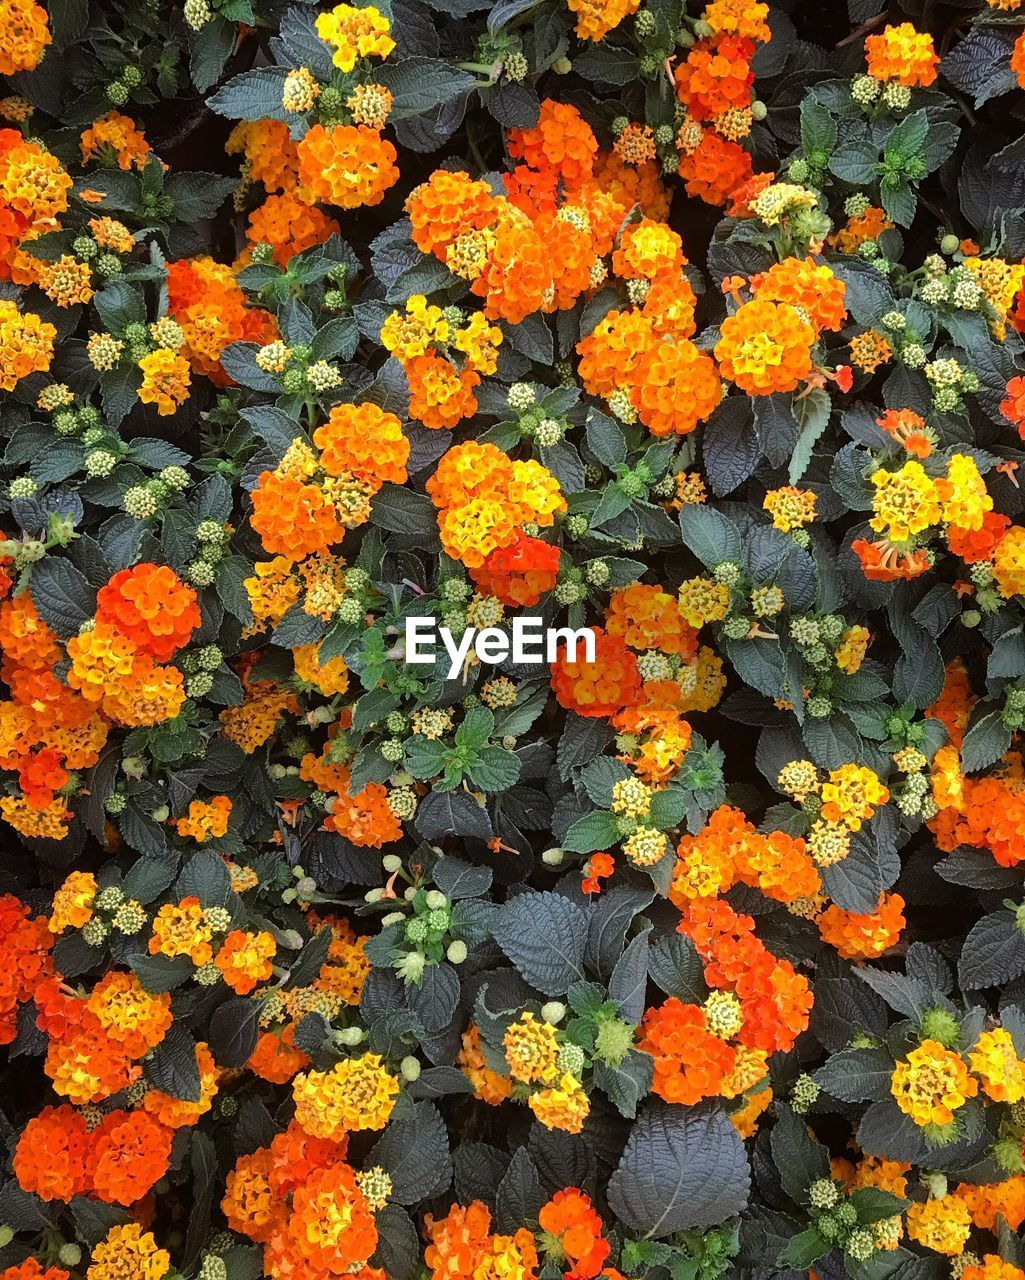 flowering plant, flower, fragility, beauty in nature, vulnerability, freshness, growth, plant, orange color, inflorescence, flower head, day, nature, close-up, high angle view, petal, no people, marigold, full frame, outdoors